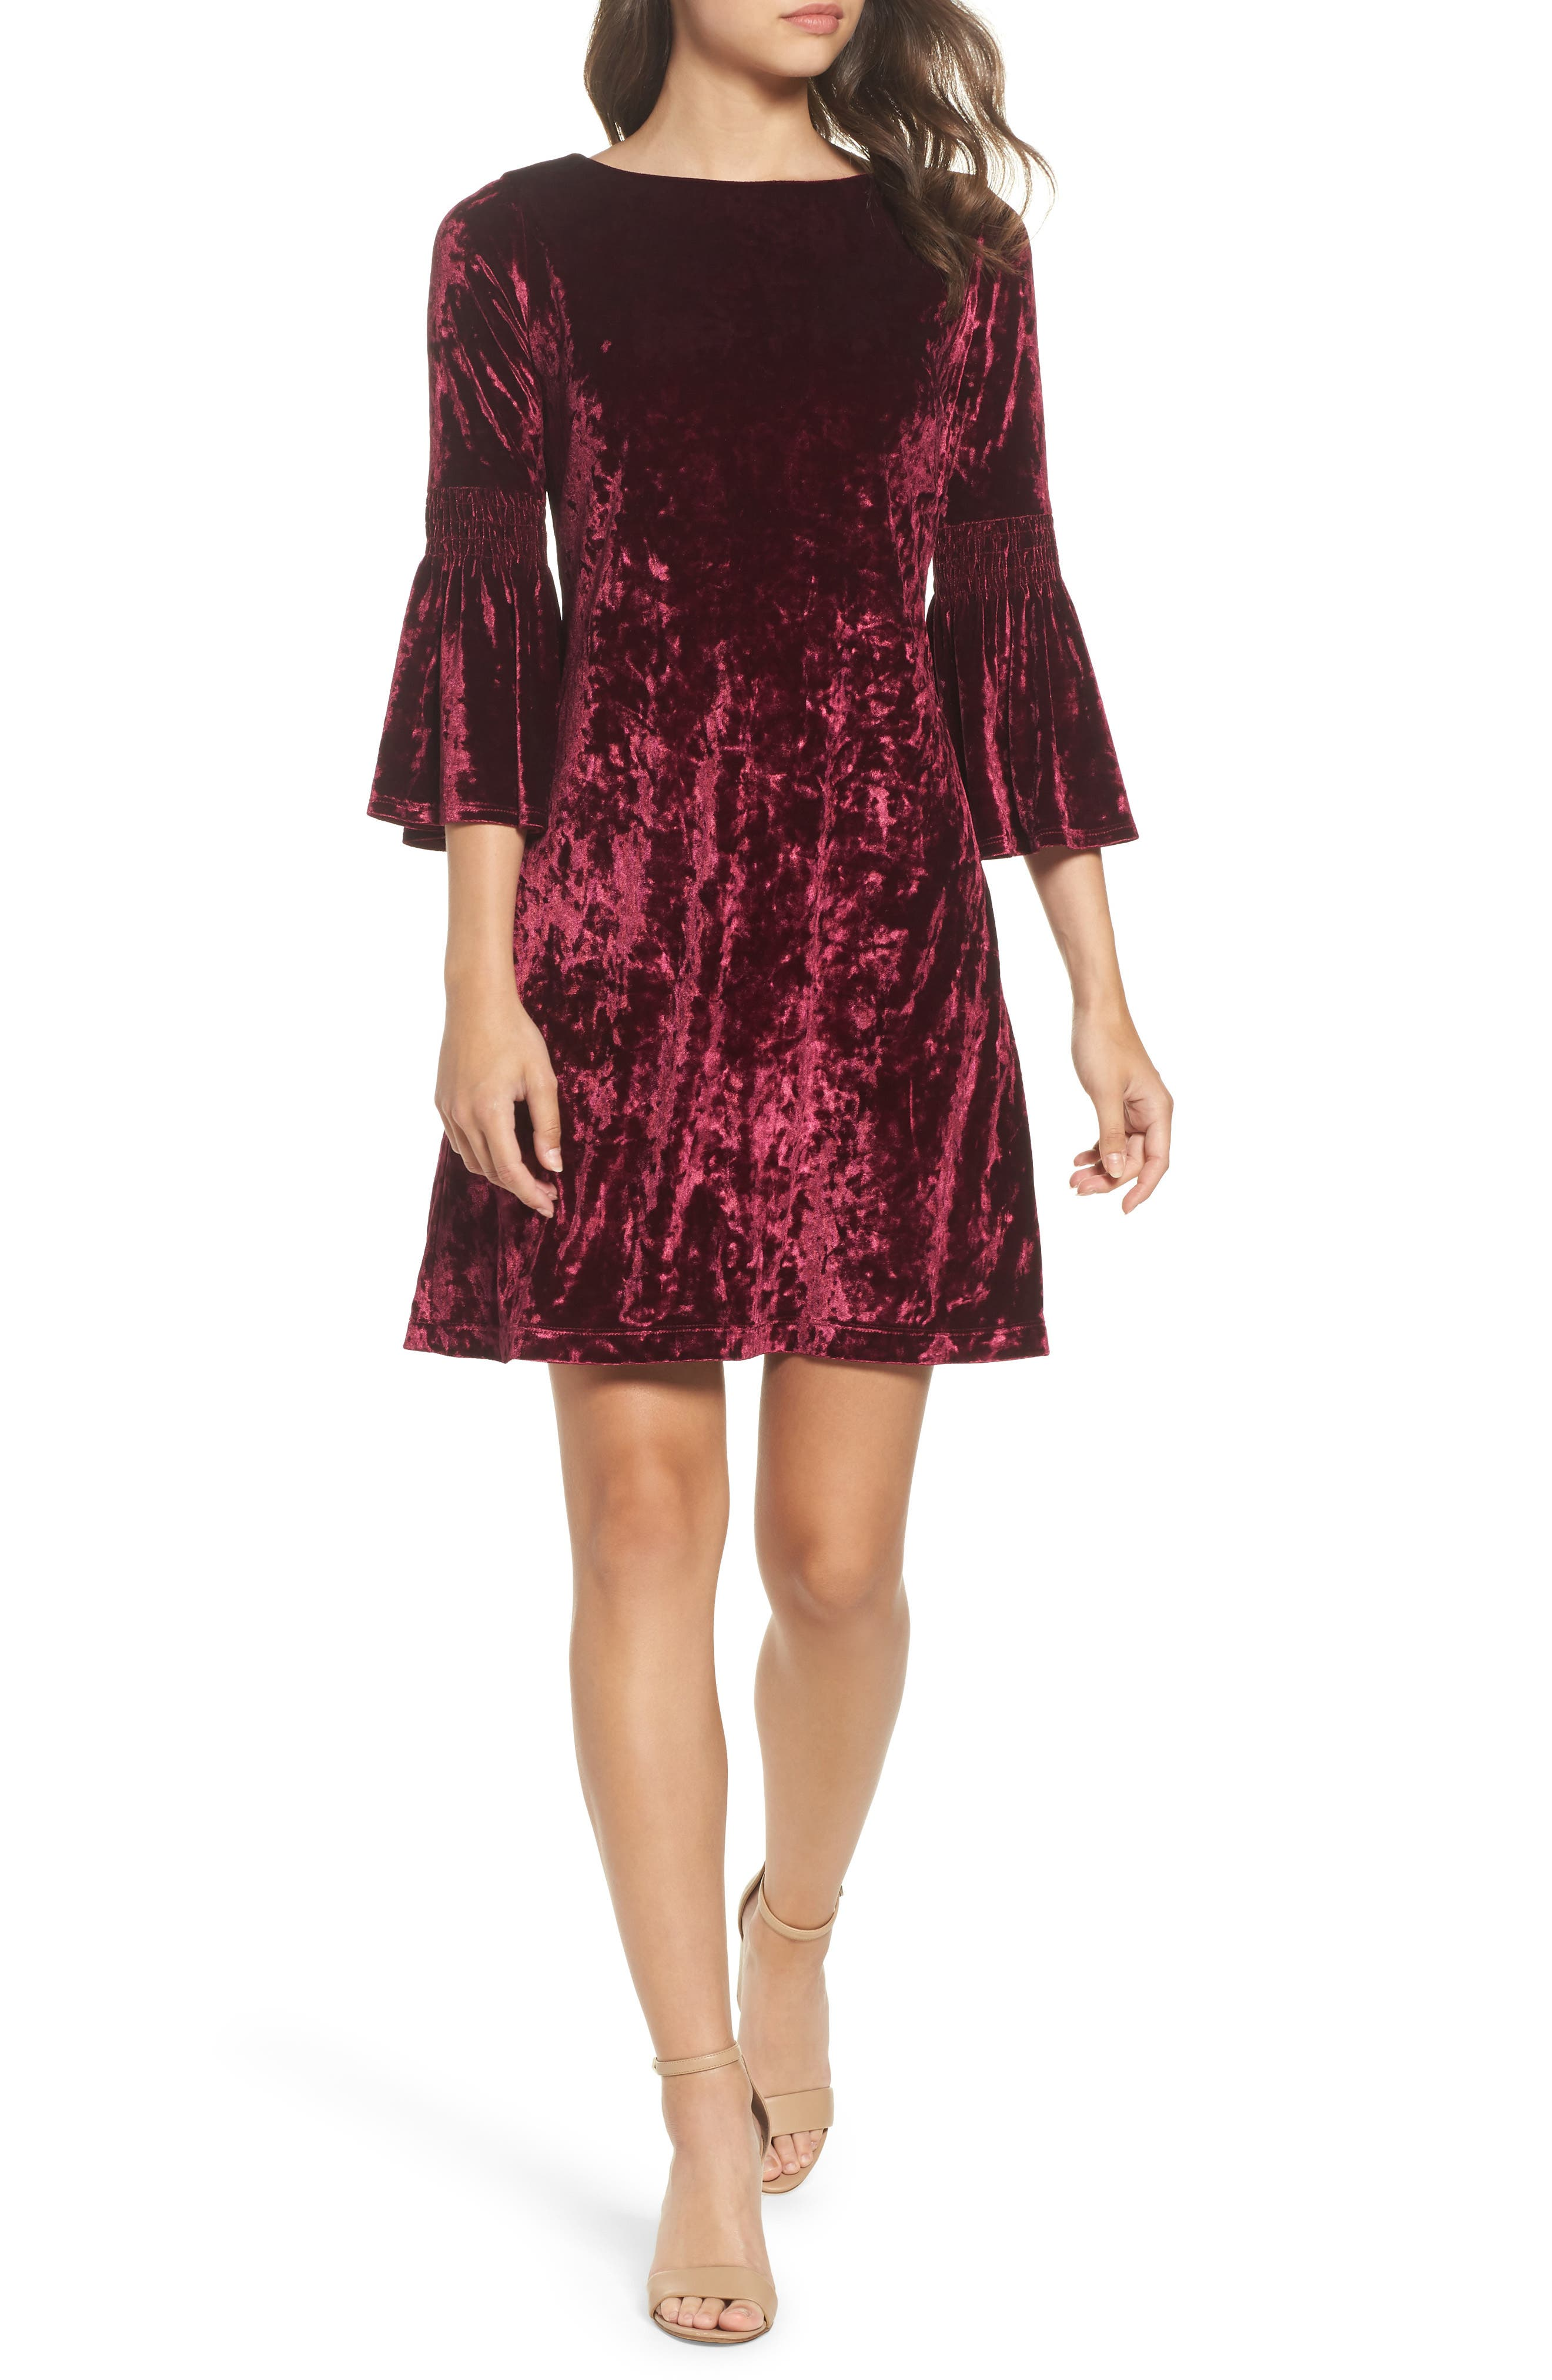 Gabby Skye Crushed Velvet Bell Sleeve Dress